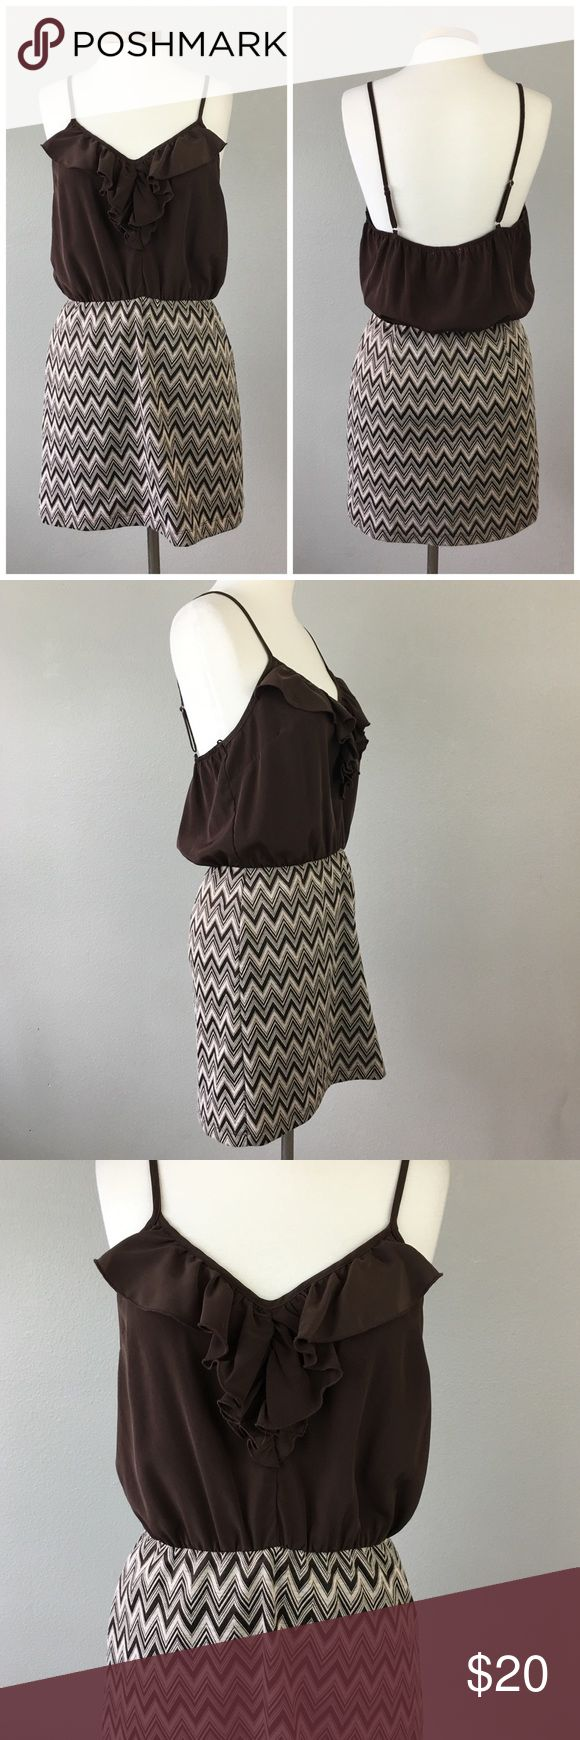 Apricot Lane Boutique Chevron Tank Brown Dress Apricot Lane Boutique Chevron Tank Brown Dress. Size large (12). Dress has adjustable straps and slight stretch. Hits slightly above the knee in length. Thank you for looking at my listing. Please feel free to comment with any questions (no trades/modeling).  •Fabric: polyester spandex blend  •Condition: Very good! No visible flaws.   ✨Bundle and save!✨10% off 2 items, 20% off 3 items & 30% off 5+ items! KA apricot lane Dresses Mini